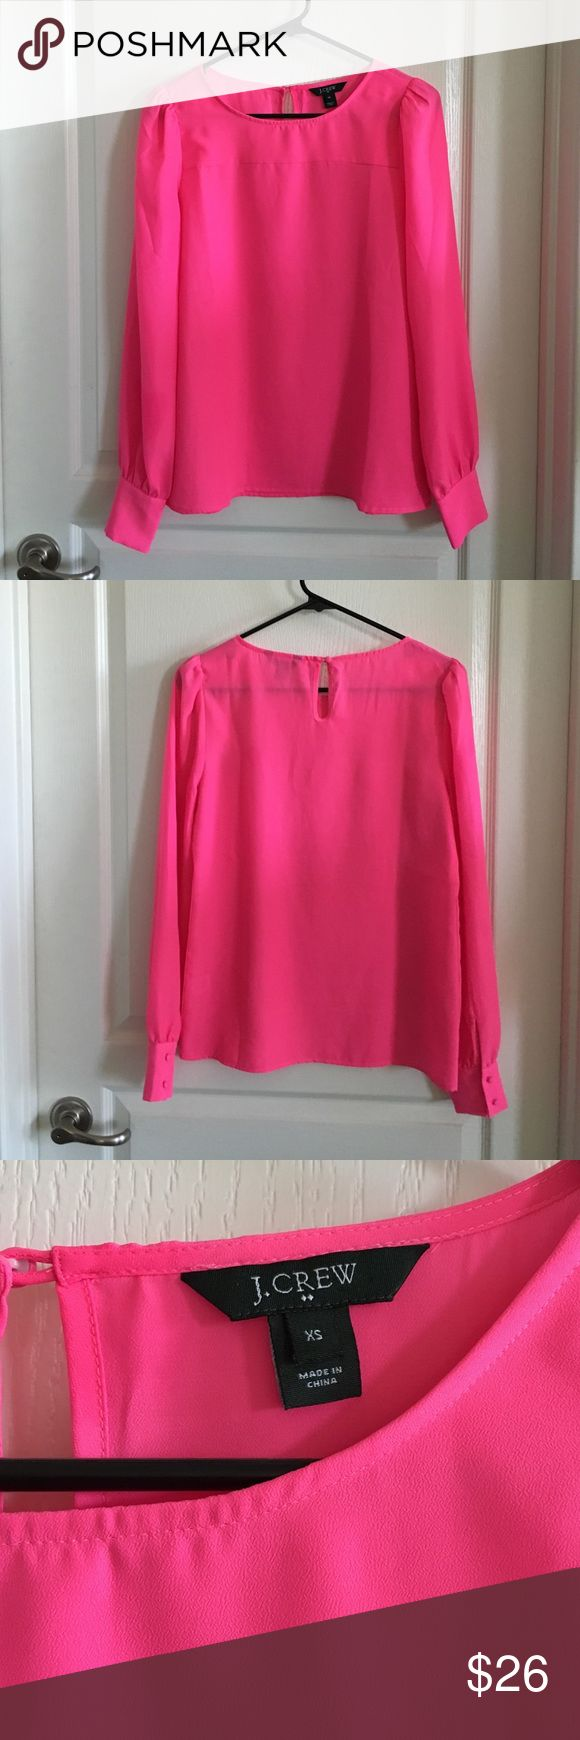 J Crew Factory Hot Pink Blouse Size XS Pretty elegant blouse in hot pink. Has key hole button in back, 2 buttons at each cuff and puff sleeves. 100% polyester. Last pic is a stock photo in a different color. Worn a few times, but still in excellent condition. No trades or Paypal. J.Crew Factory Tops Blouses